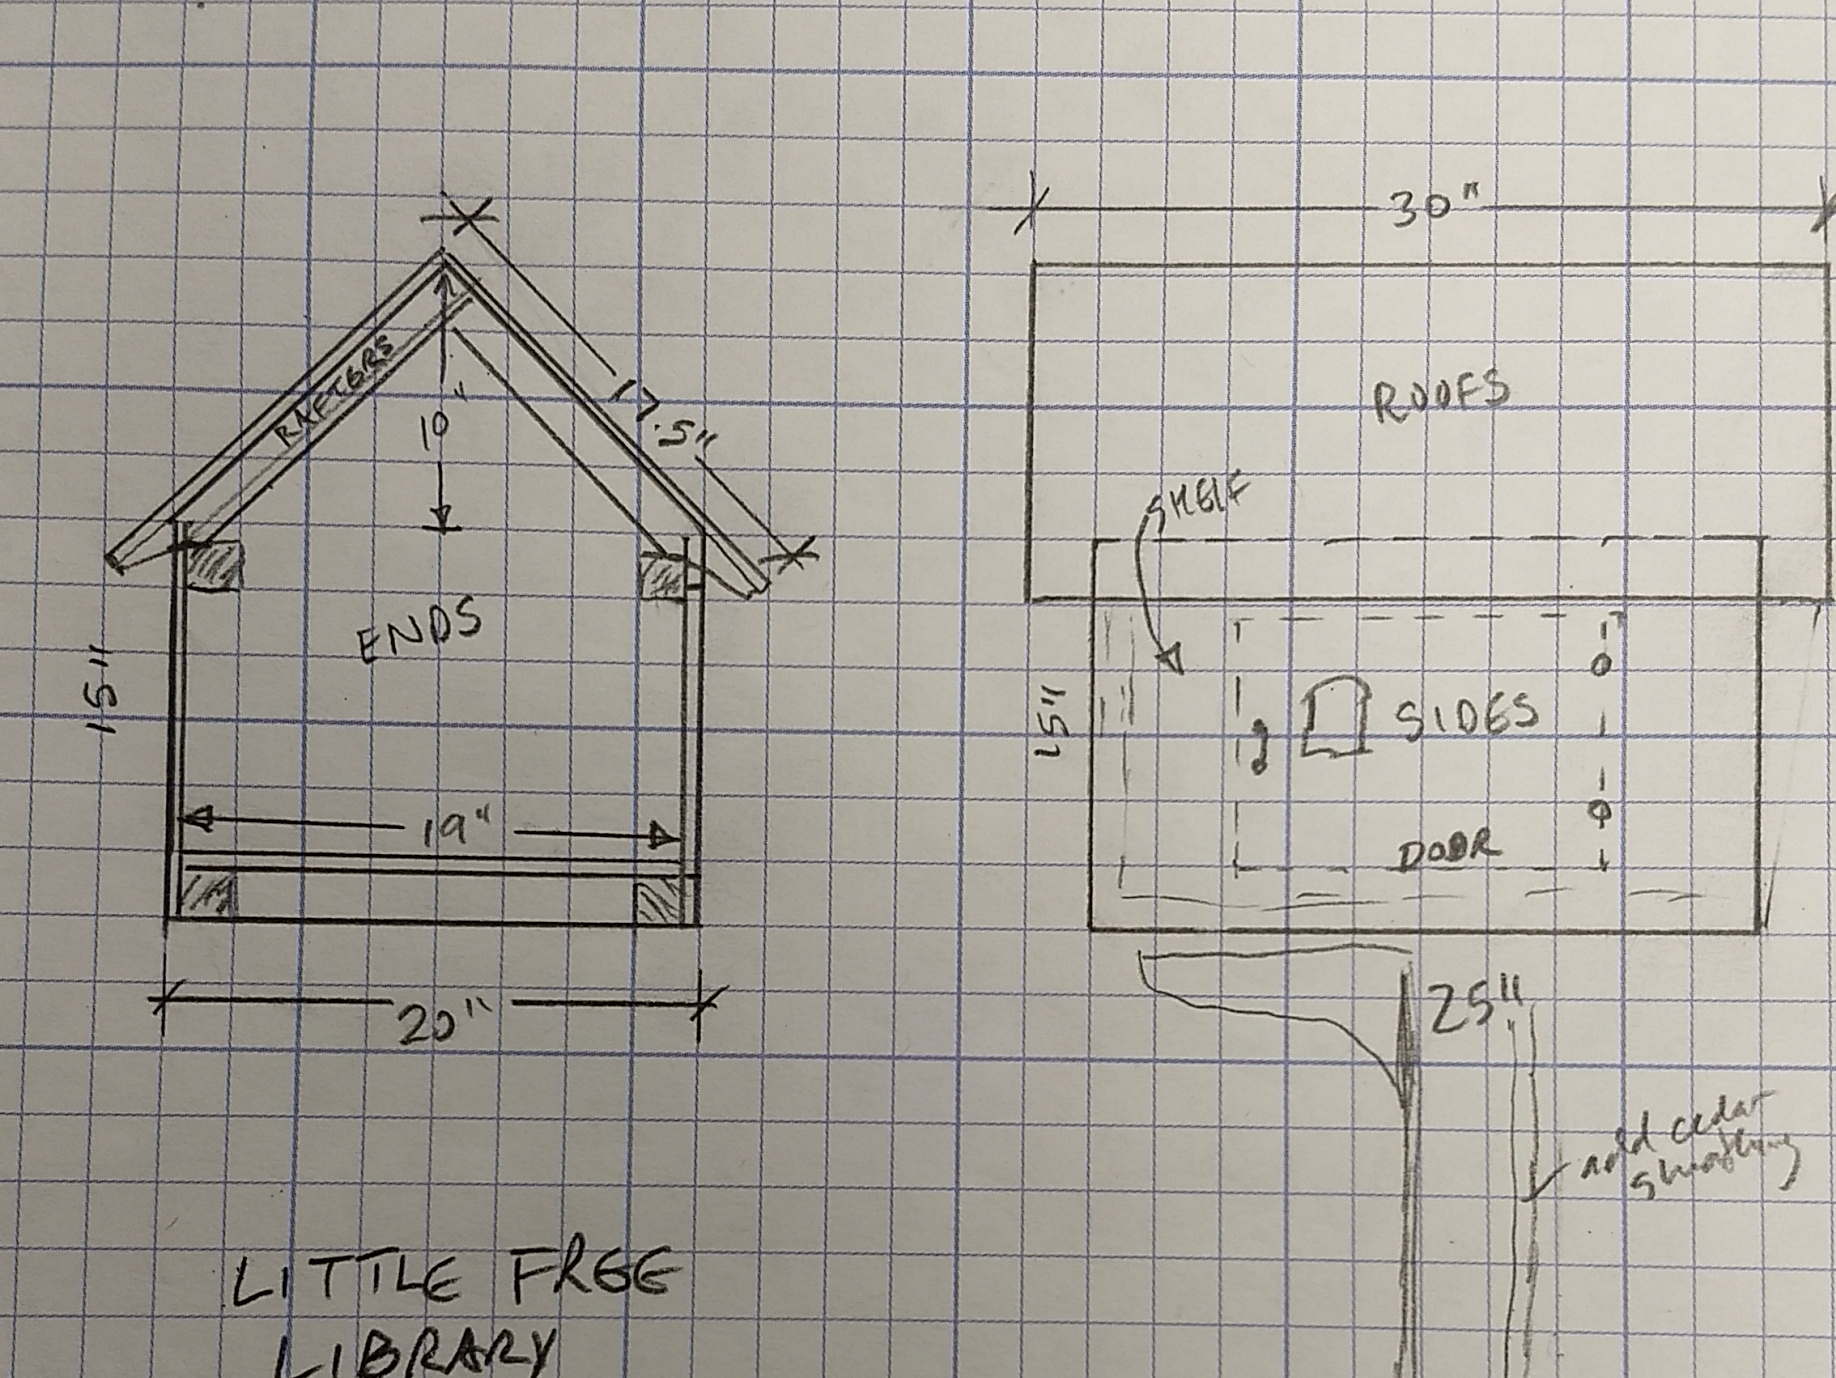 Preliminary conceptual layout for end view and front elevation.